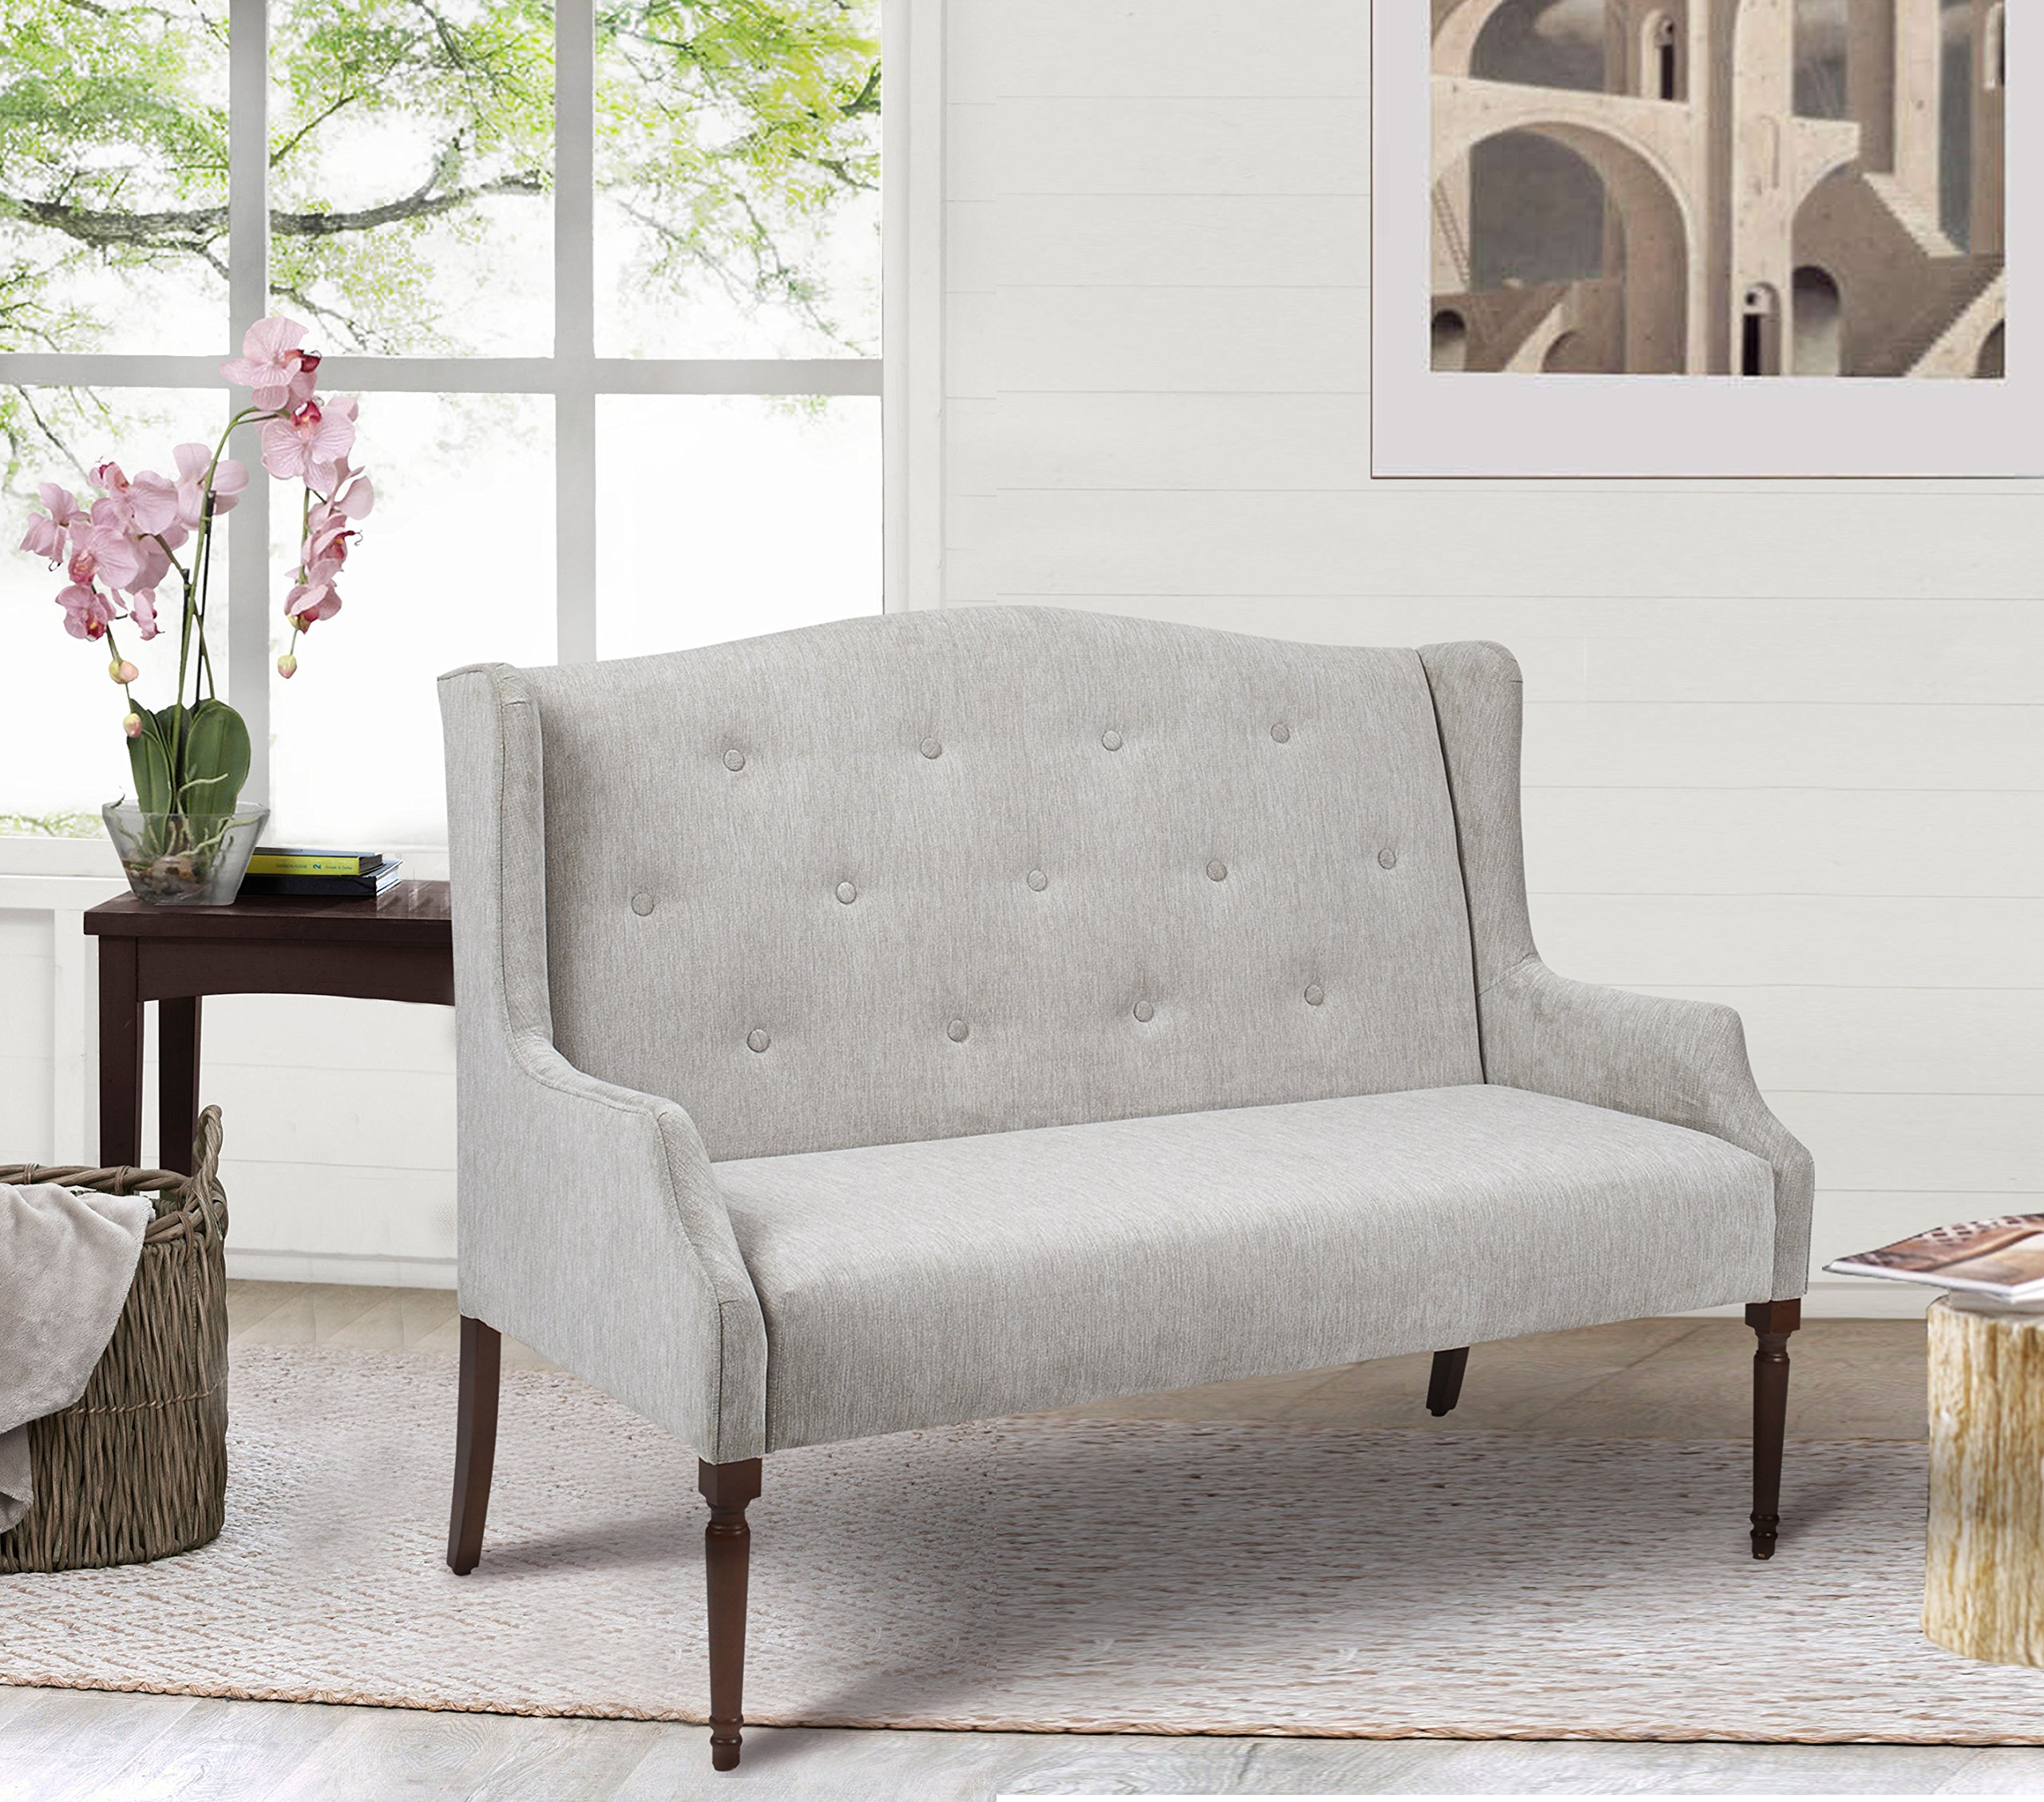 Jennifer Taylor Home Izzy Collection Modern Chic Stylish Hand Tufted Settee with Wooden Legs, Silvery Gray by Jennifer Taylor Home